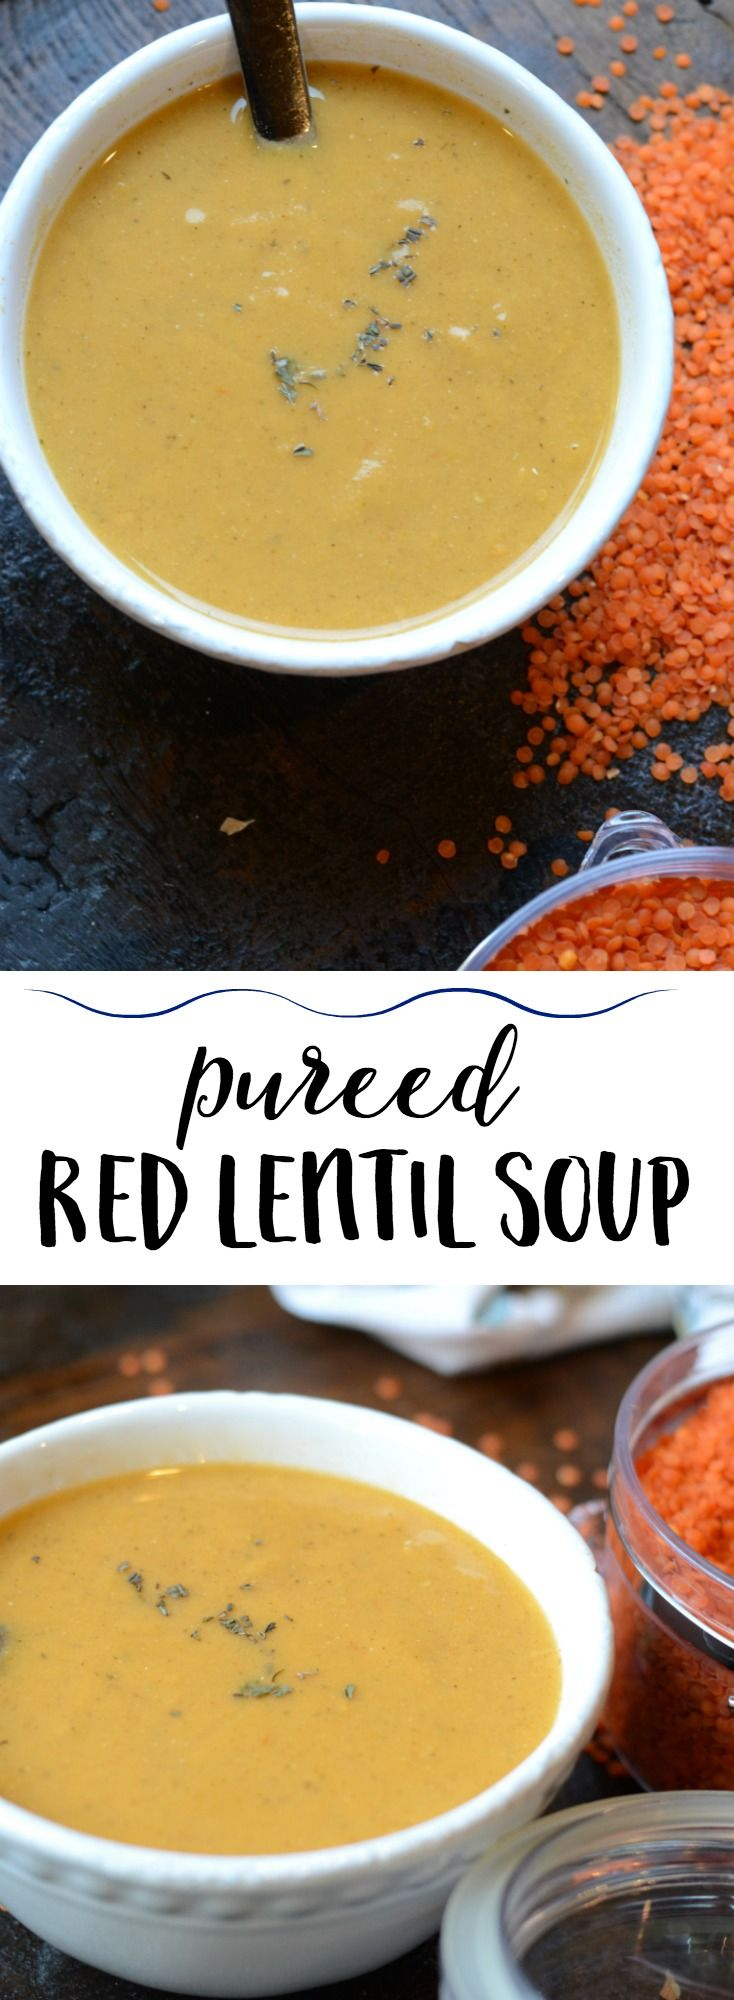 Simply delicious pureed red lentil soup. Hearty and nutritious. #lentilsoup #vegetablesoup #meatlessmonday #comfortfood #souprecipes #lentilrecipe